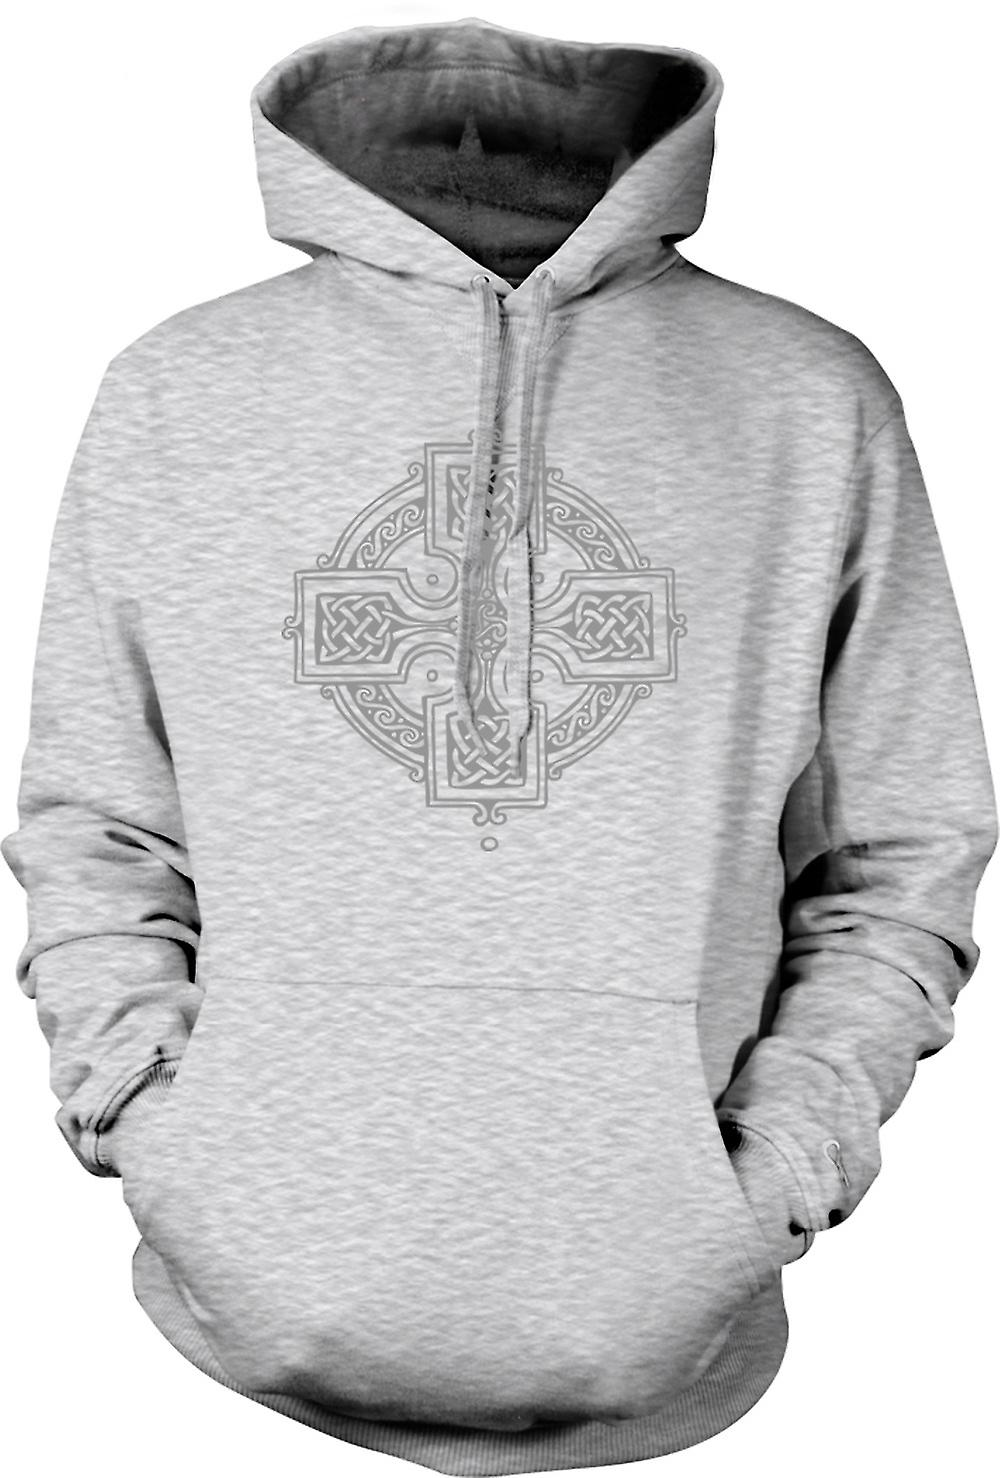 Mens Hoodie - Celtic Cross 2 - Tattoo Design